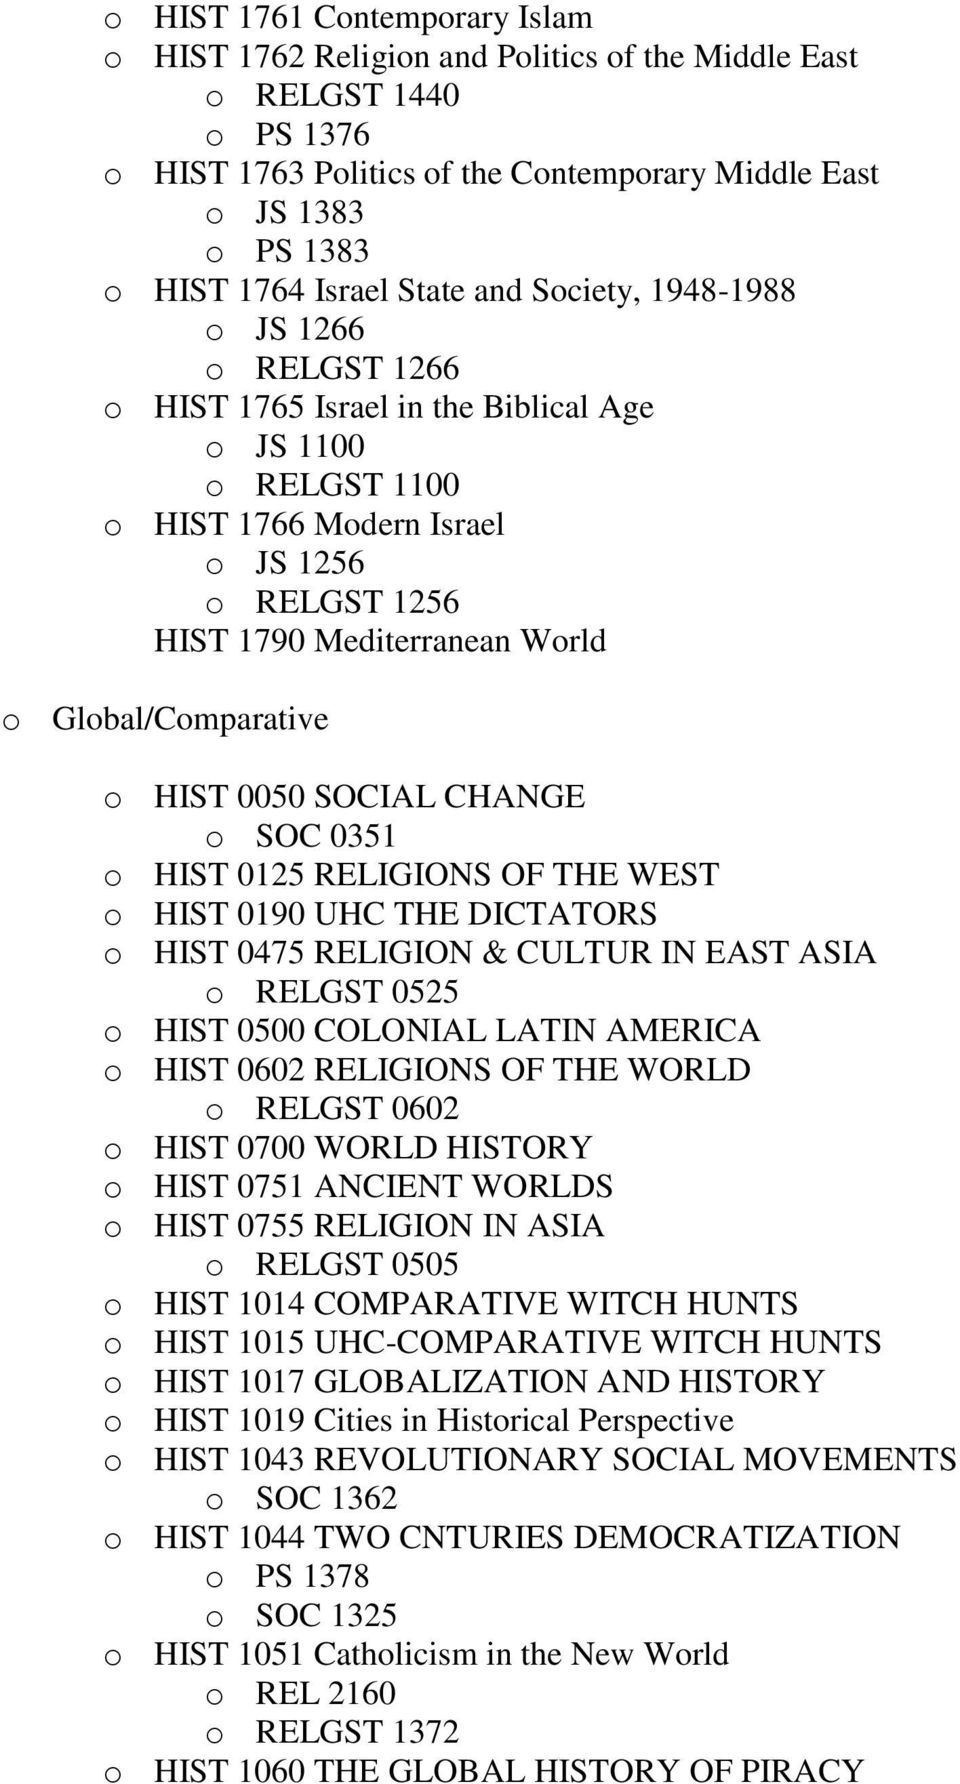 Global/Comparative o HIST 0050 SOCIAL CHANGE o SOC 0351 o HIST 0125 RELIGIONS OF THE WEST o HIST 0190 UHC THE DICTATORS o HIST 0475 RELIGION & CULTUR IN EAST ASIA o RELGST 0525 o HIST 0500 COLONIAL